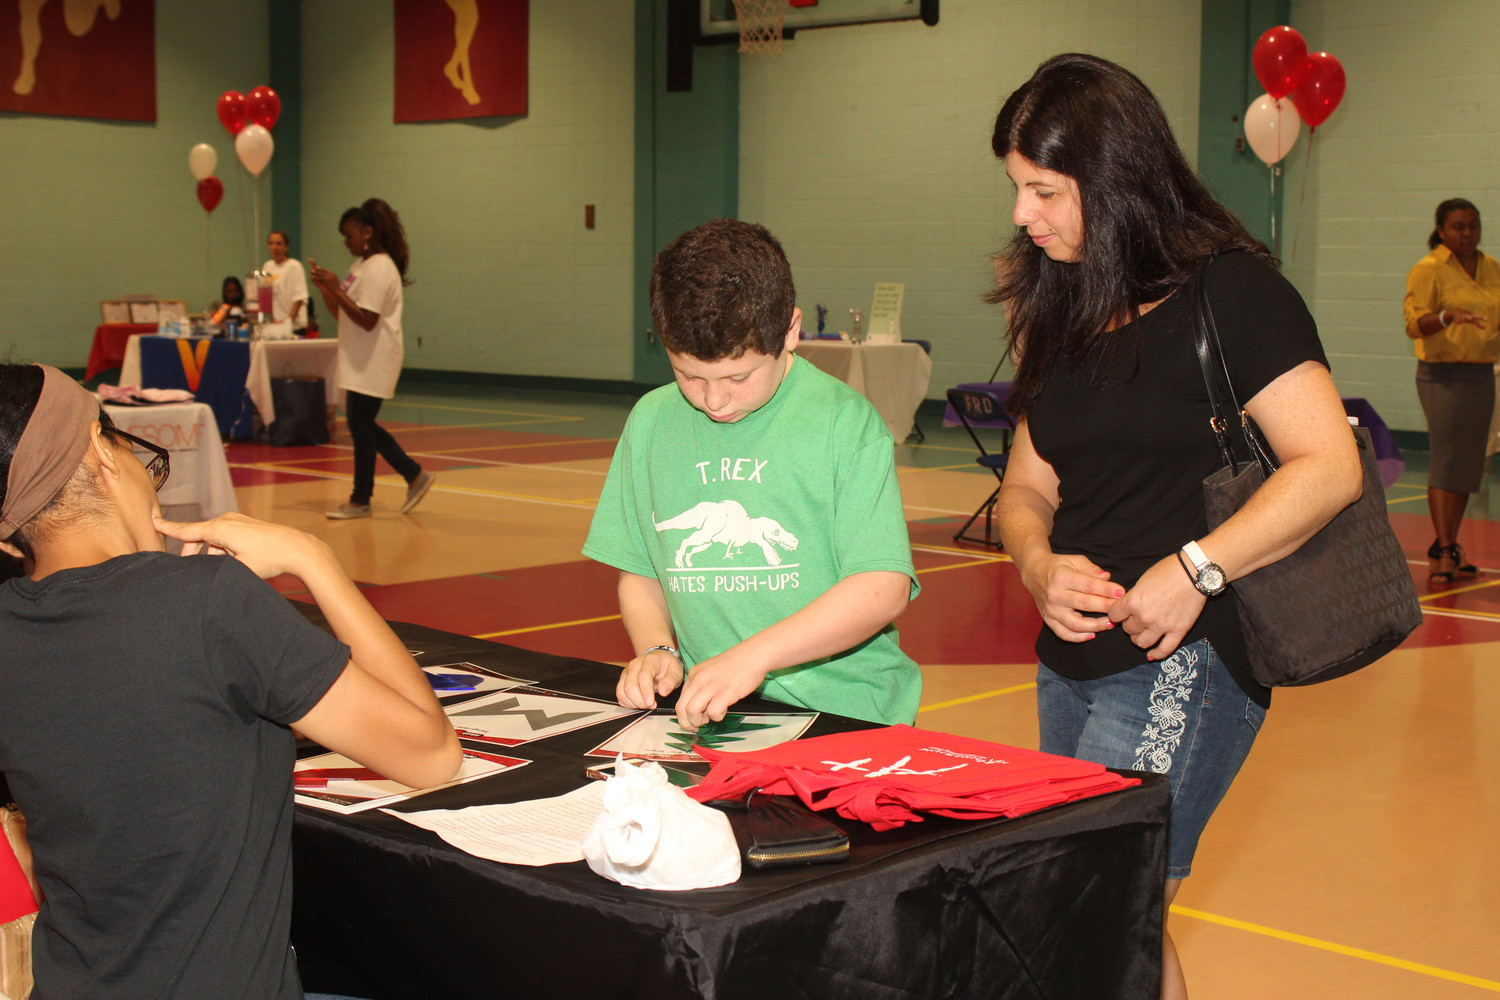 Freeport Health Fair 9/15/18 Jeannette Acquavella and her son Matthew, age 10, visit one of the tables at the Freeport Recreation Center health fair held for residents on Saturday, September 15th.